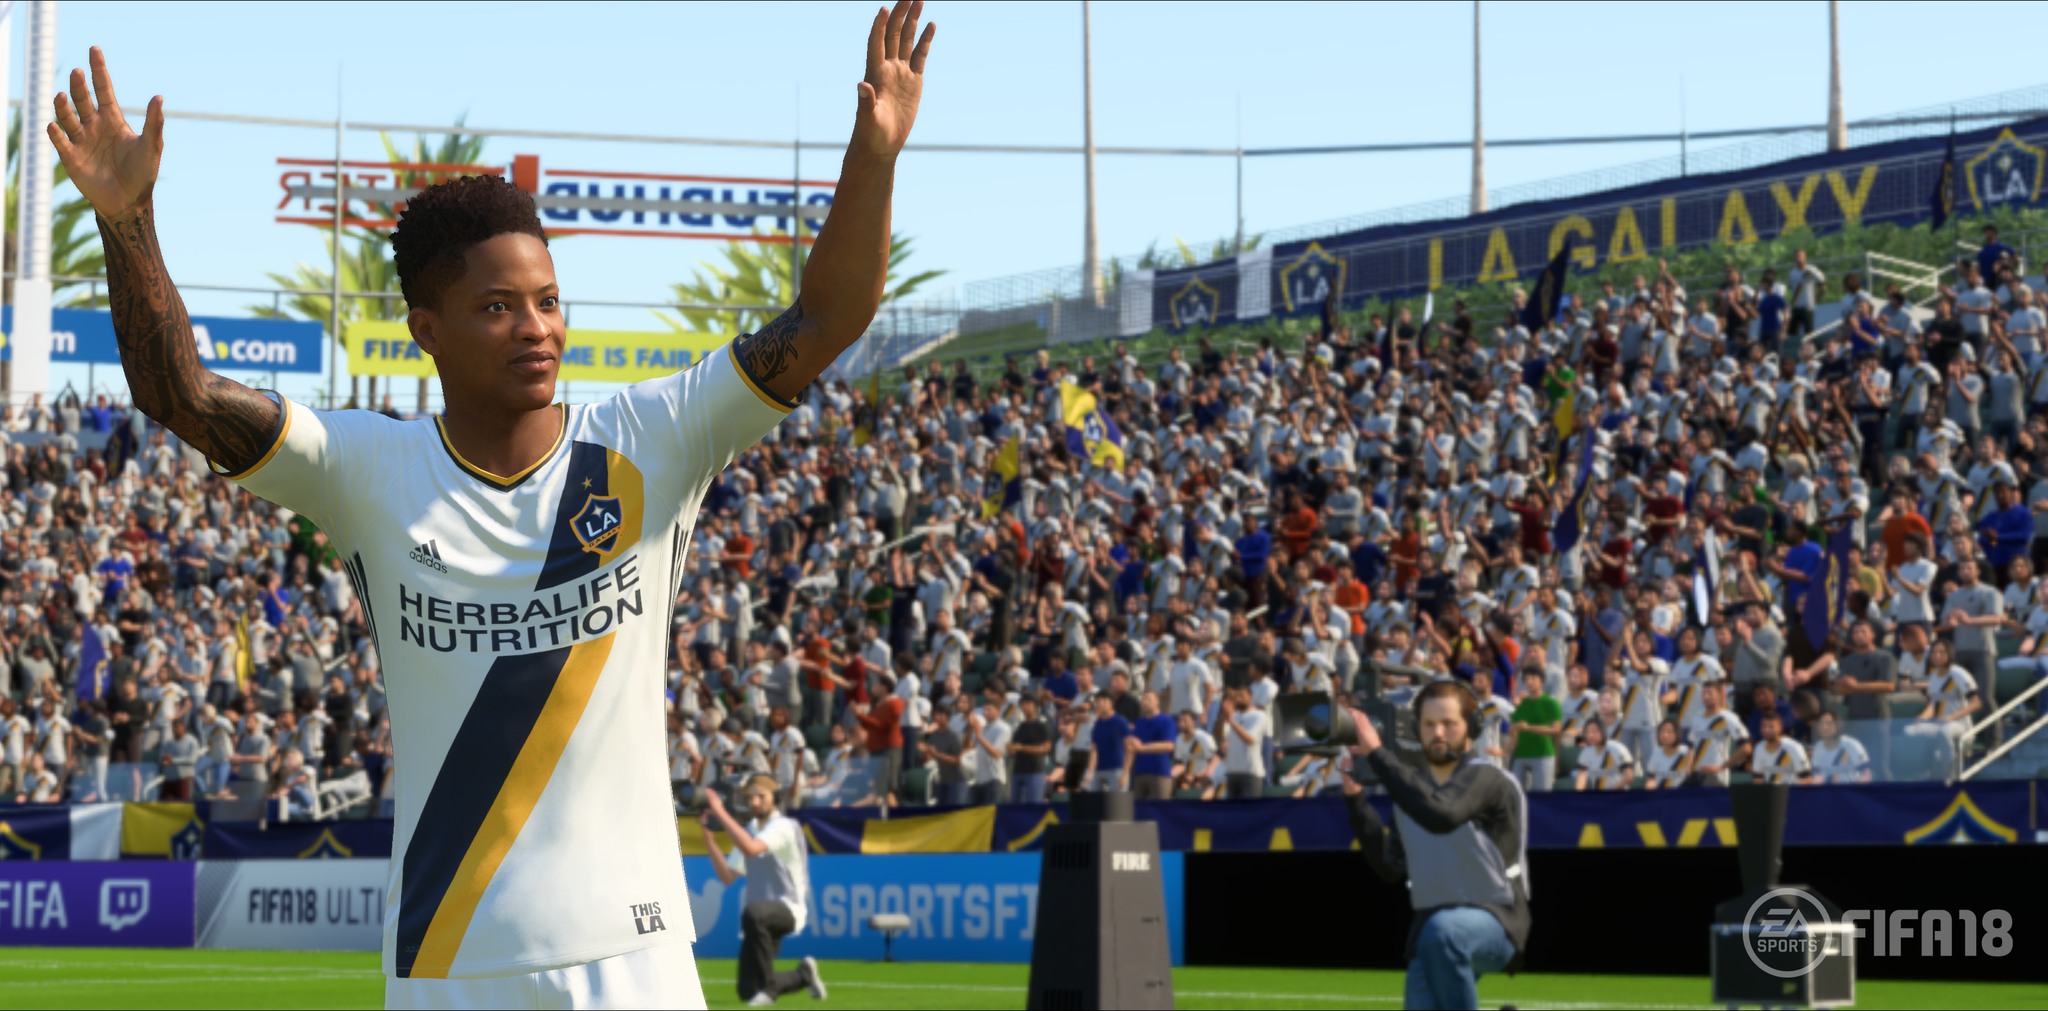 FIFA 18 or PES 2018: Which game should you buy this year?